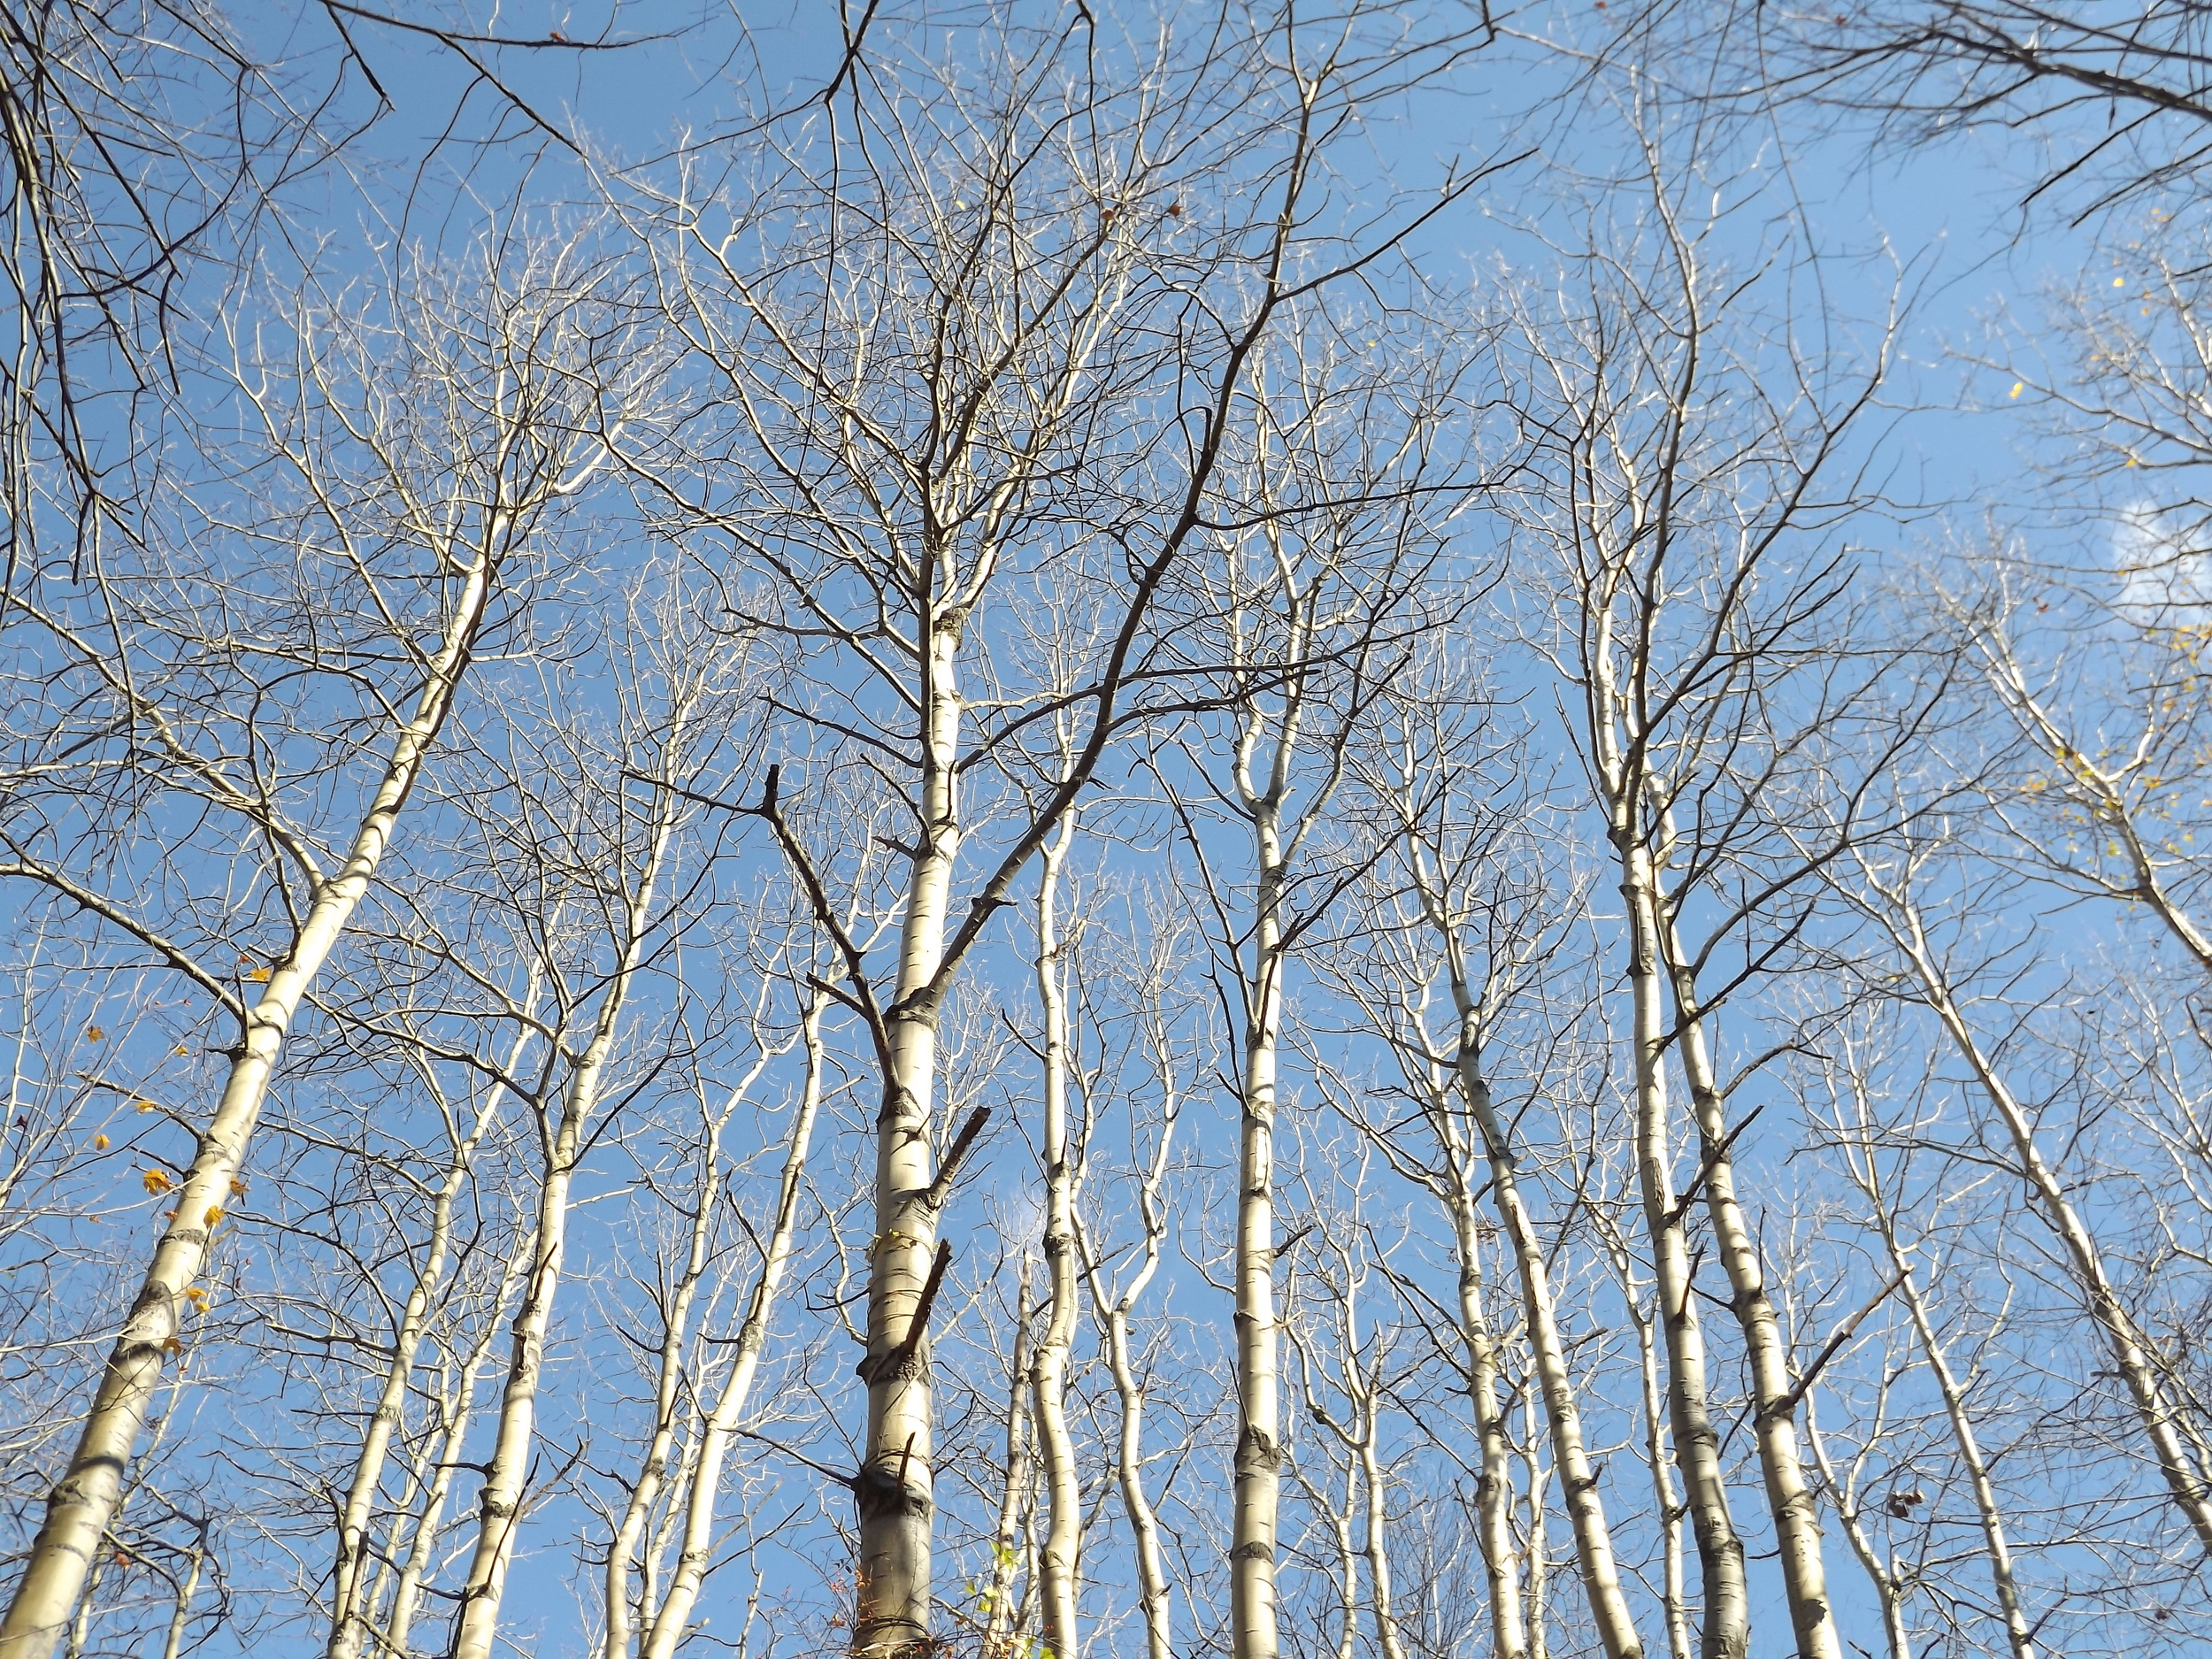 Quaking Aspen ( Populus tremuloides ) - I photographed this same stand of Aspen trees a few weeks ago when they still had leaves, but now the leaves have fallen leaving just the bare bark of their trunks standing out against the backdrop of the bright blue sky.